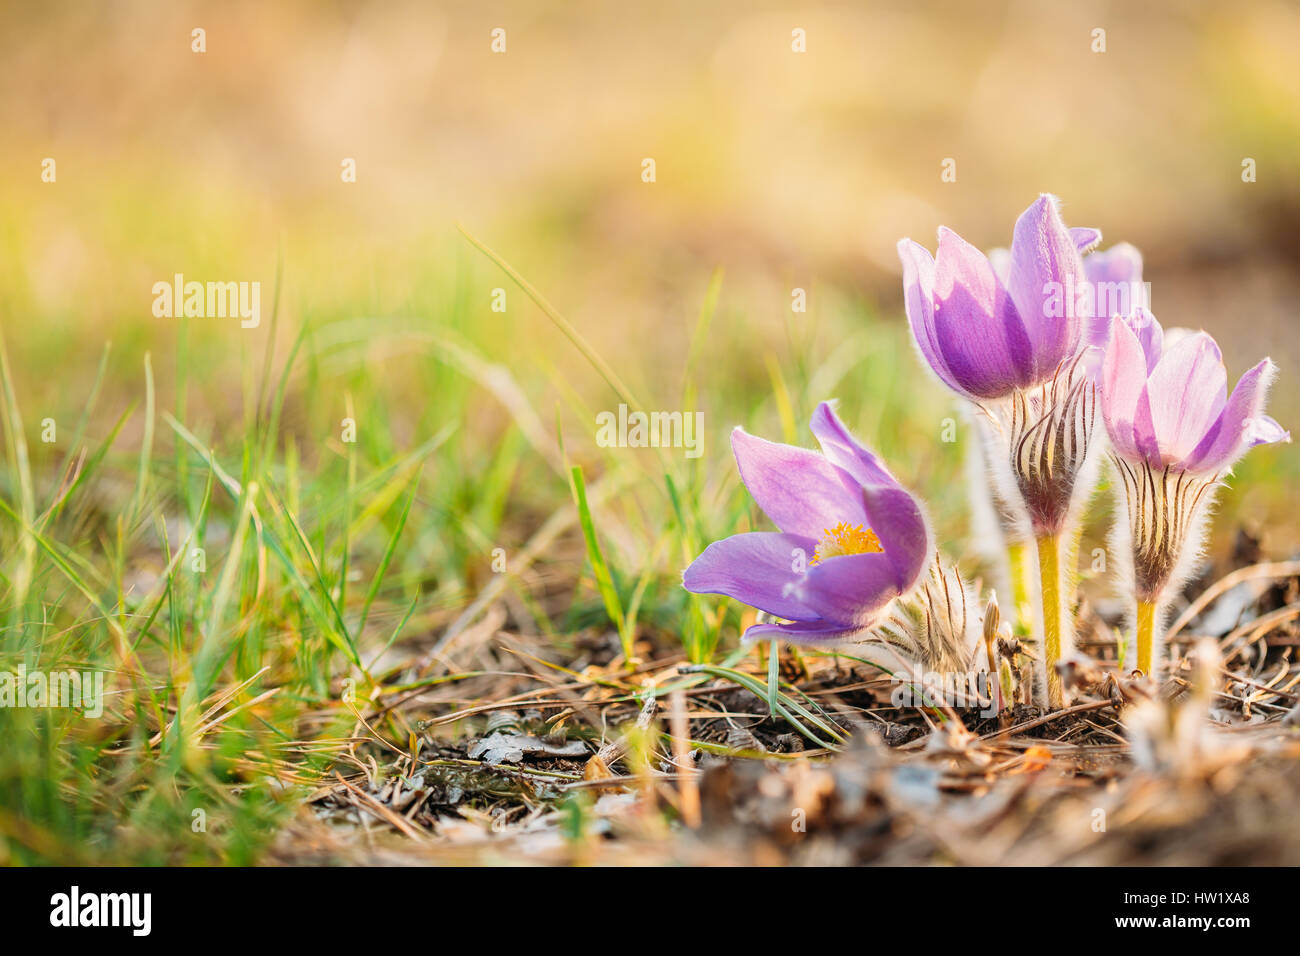 Wild spring flowers pulsatilla patens flowering plant in family wild spring flowers pulsatilla patens flowering plant in family ranunculaceae native to europe russia mongolia china canada and united states mightylinksfo